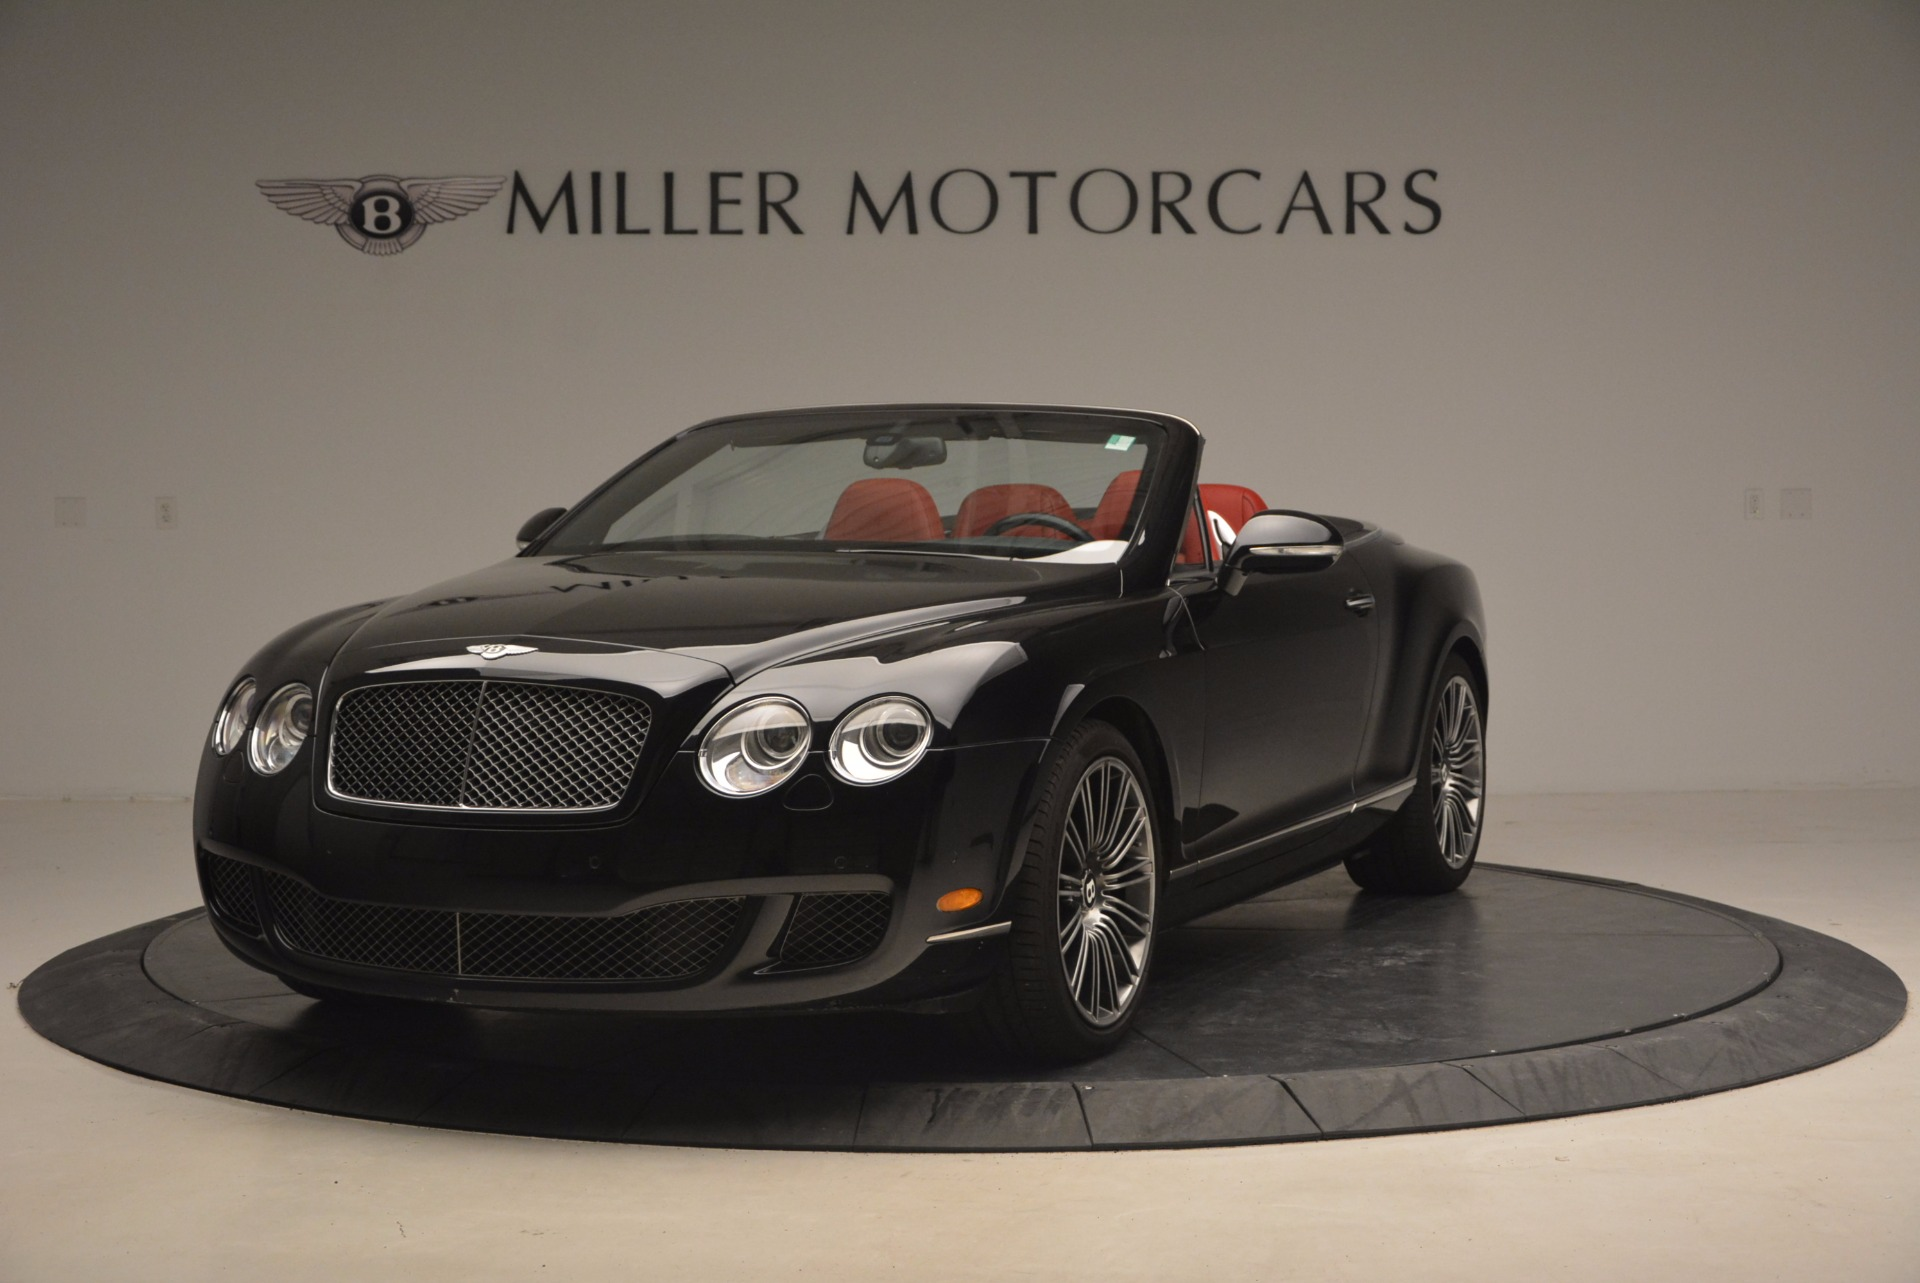 Used 2010 Bentley Continental GT Speed for sale Sold at Bentley Greenwich in Greenwich CT 06830 1